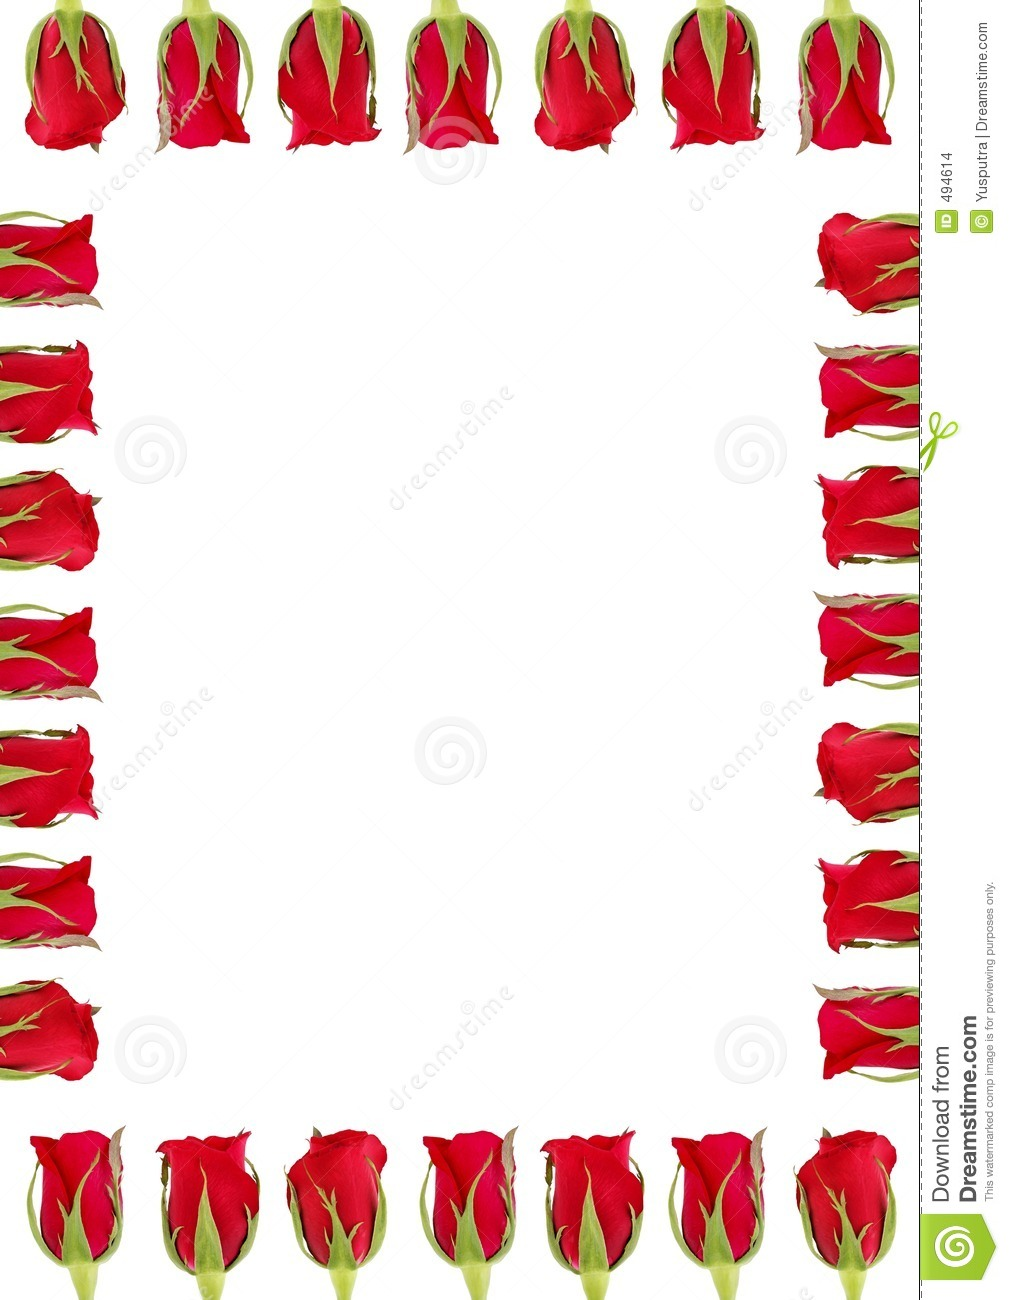 Roses A4 Stock Images - Image: 494614